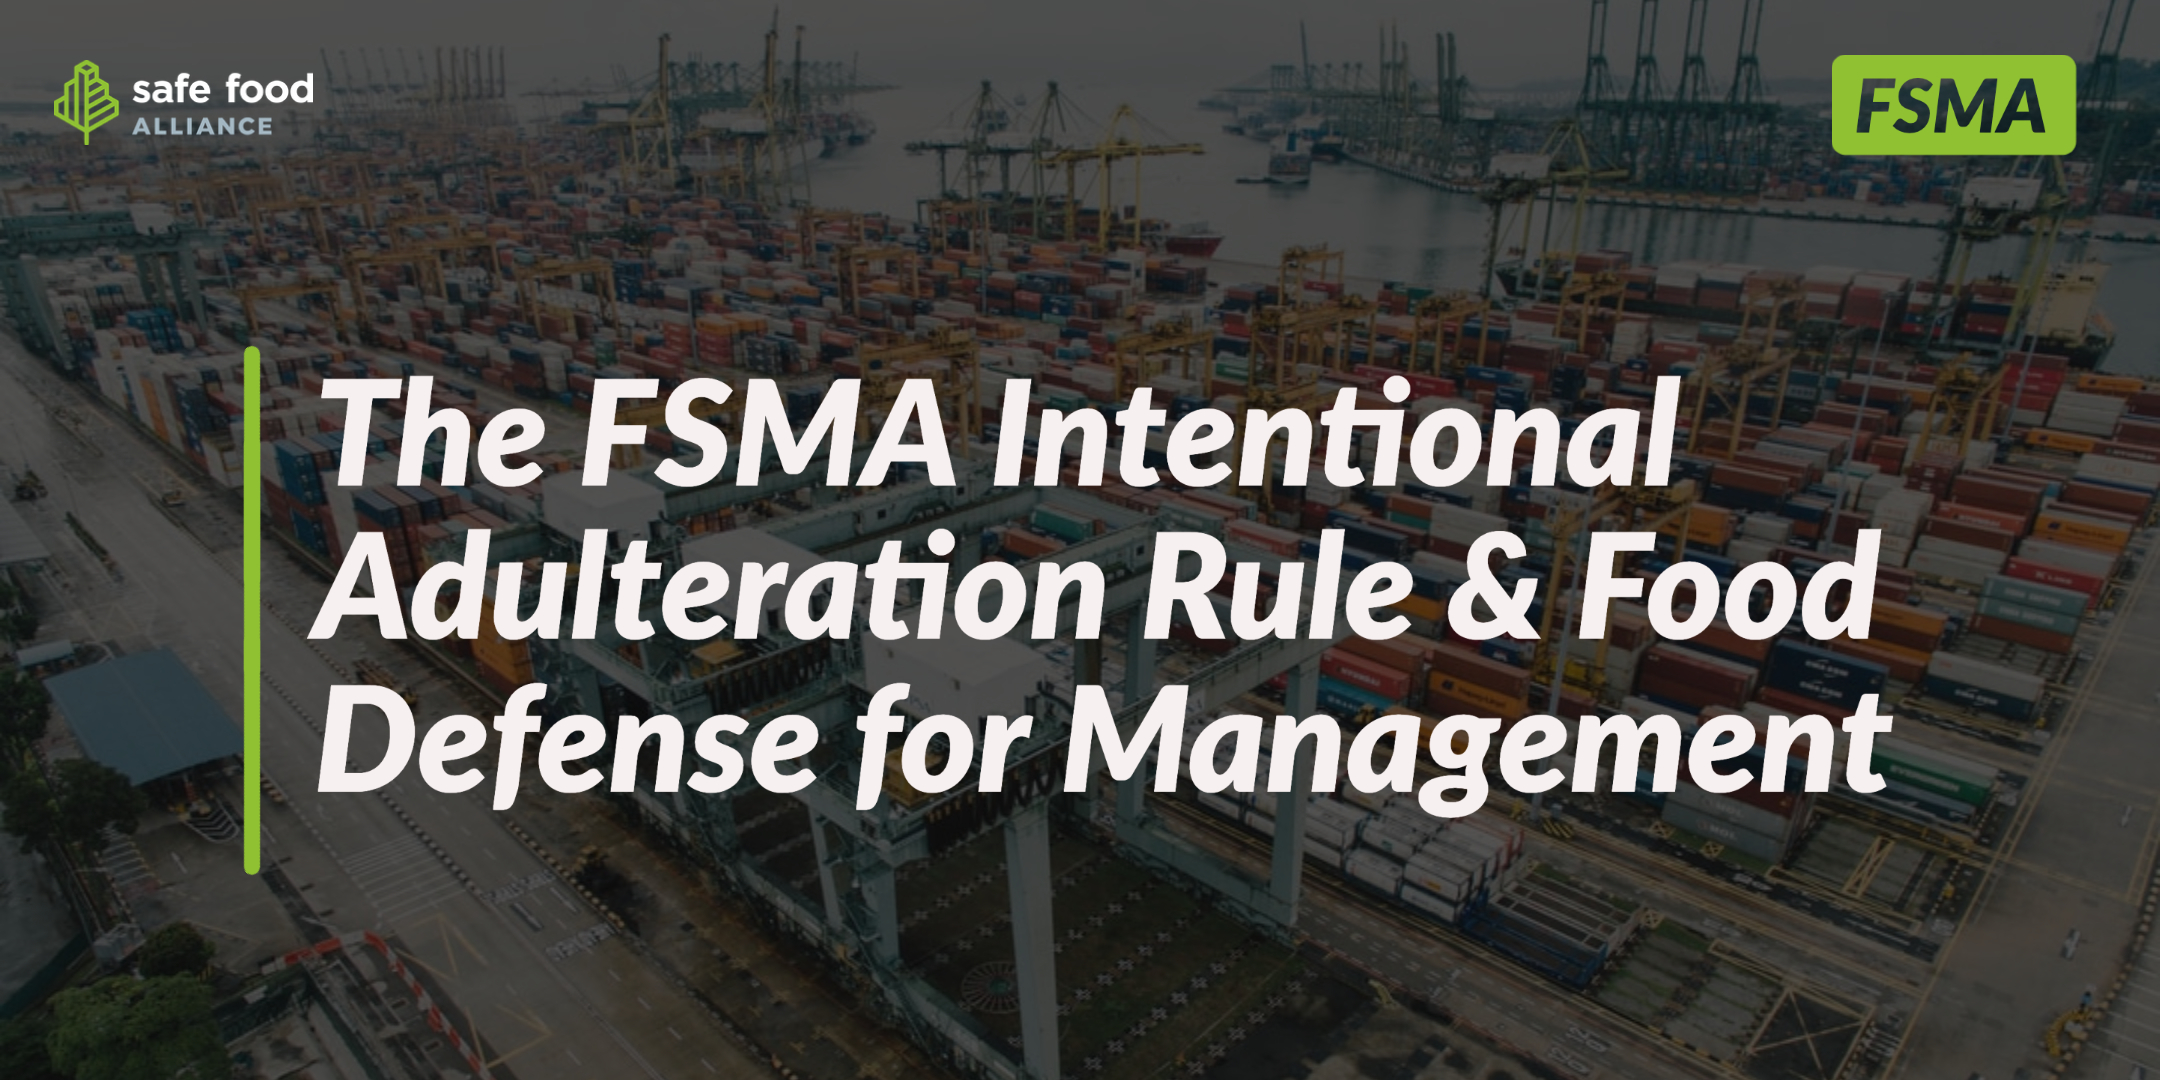 FDA'S FSMA Intentional Adulteration Rule & Food Defense for Management